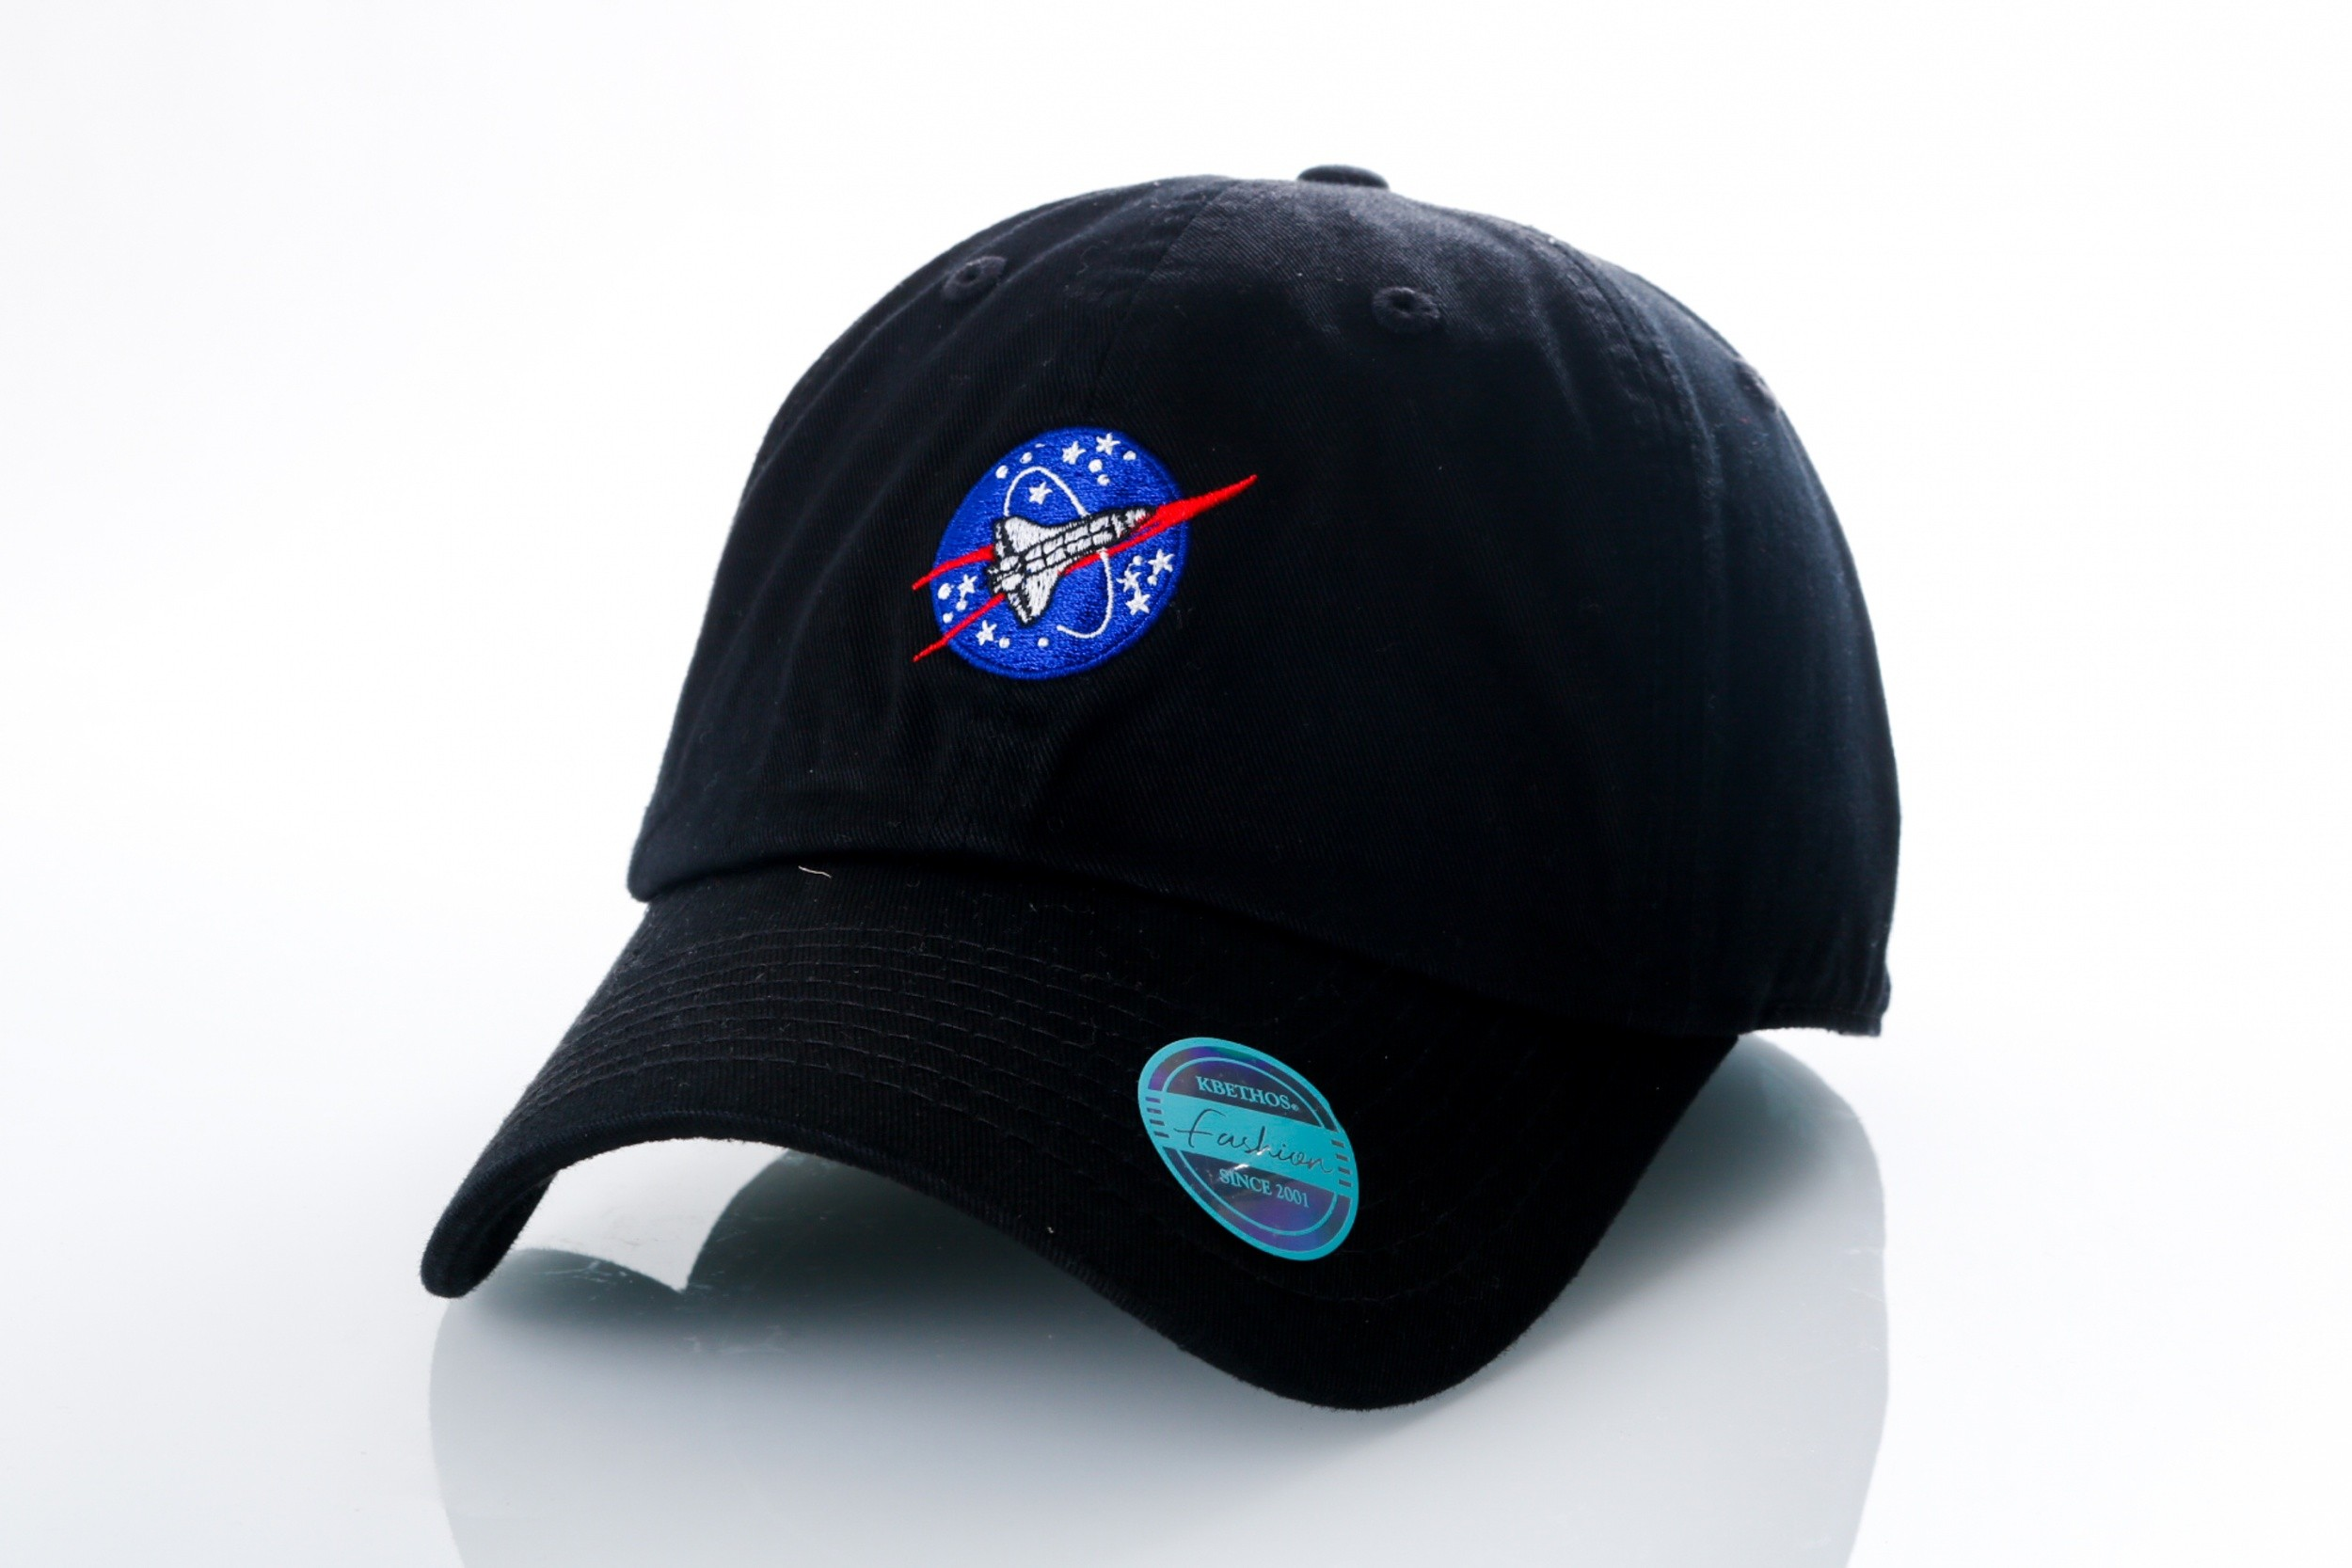 Foto van Ethos Space KBSV-036 black KBSV-036 dad cap black